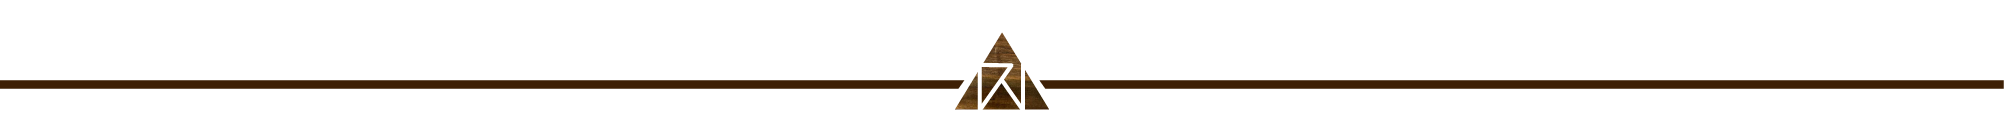 Dan-Wutton-Lines_Brown-Wooden.png